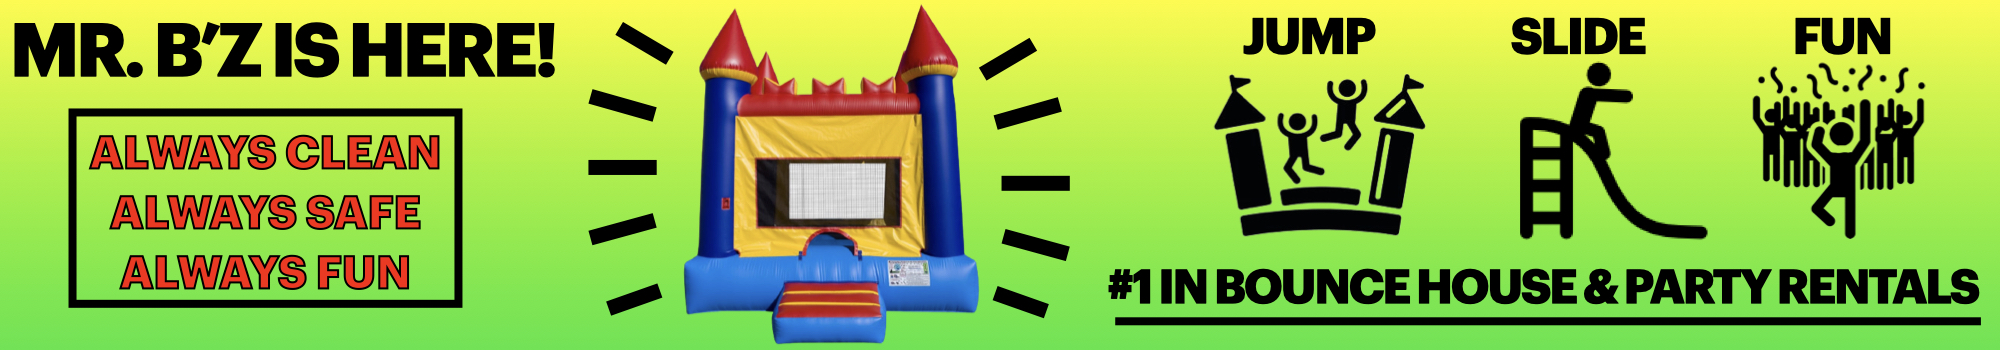 #1Bounce House Rentals